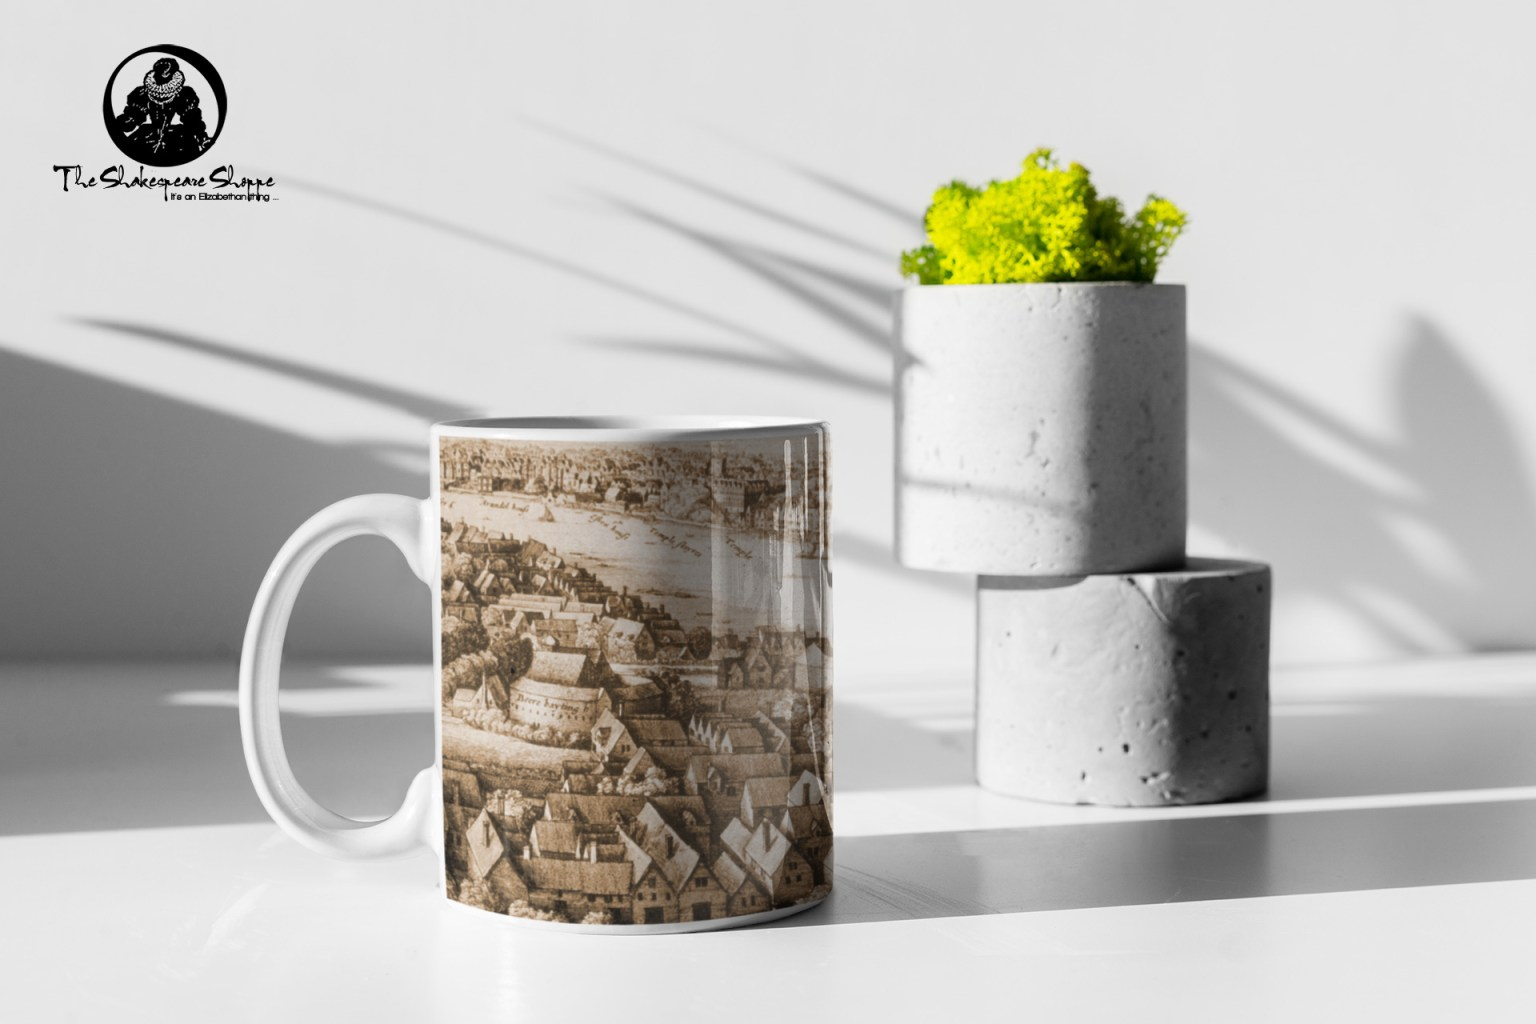 mockup-of-an-11-oz-mug-with-a-plant-pot-under-lights-and-shadows-399-el